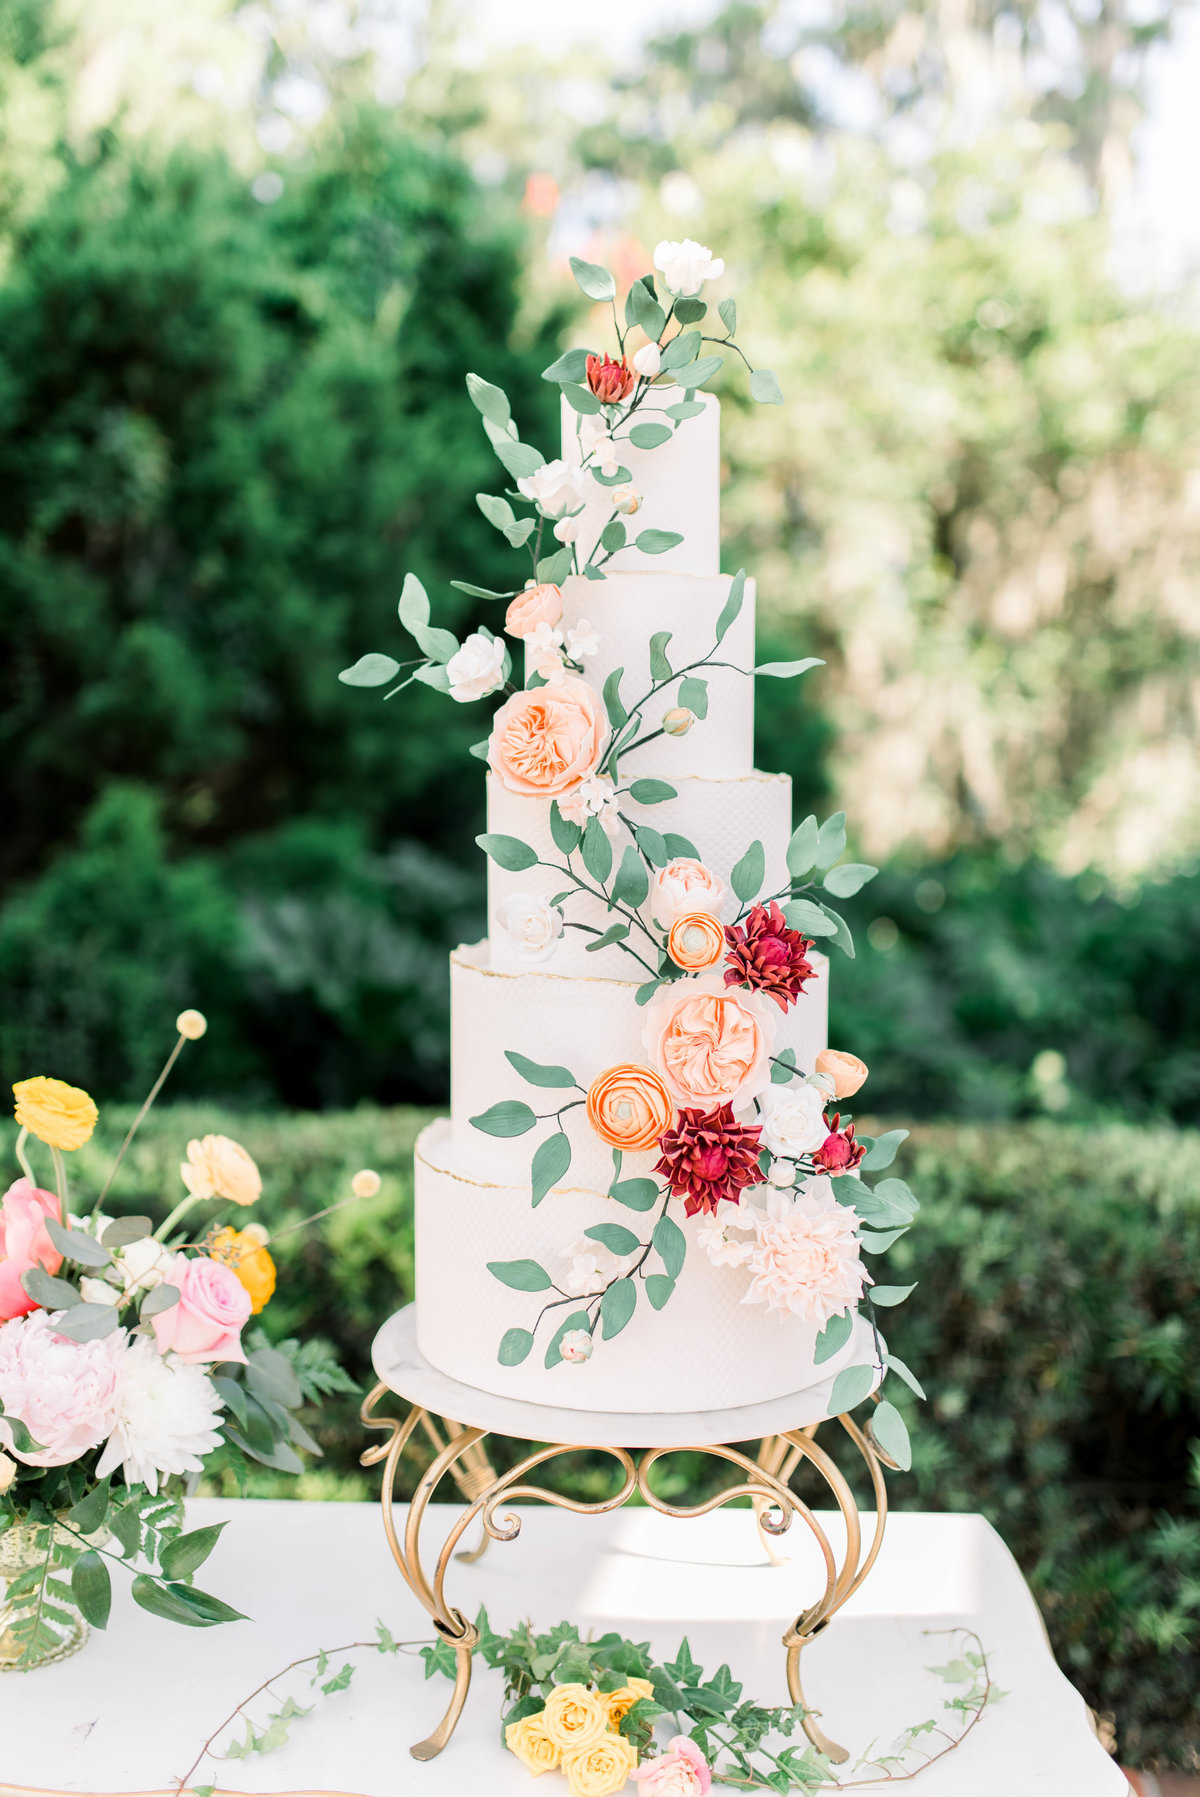 Dream wedding cake with flowers